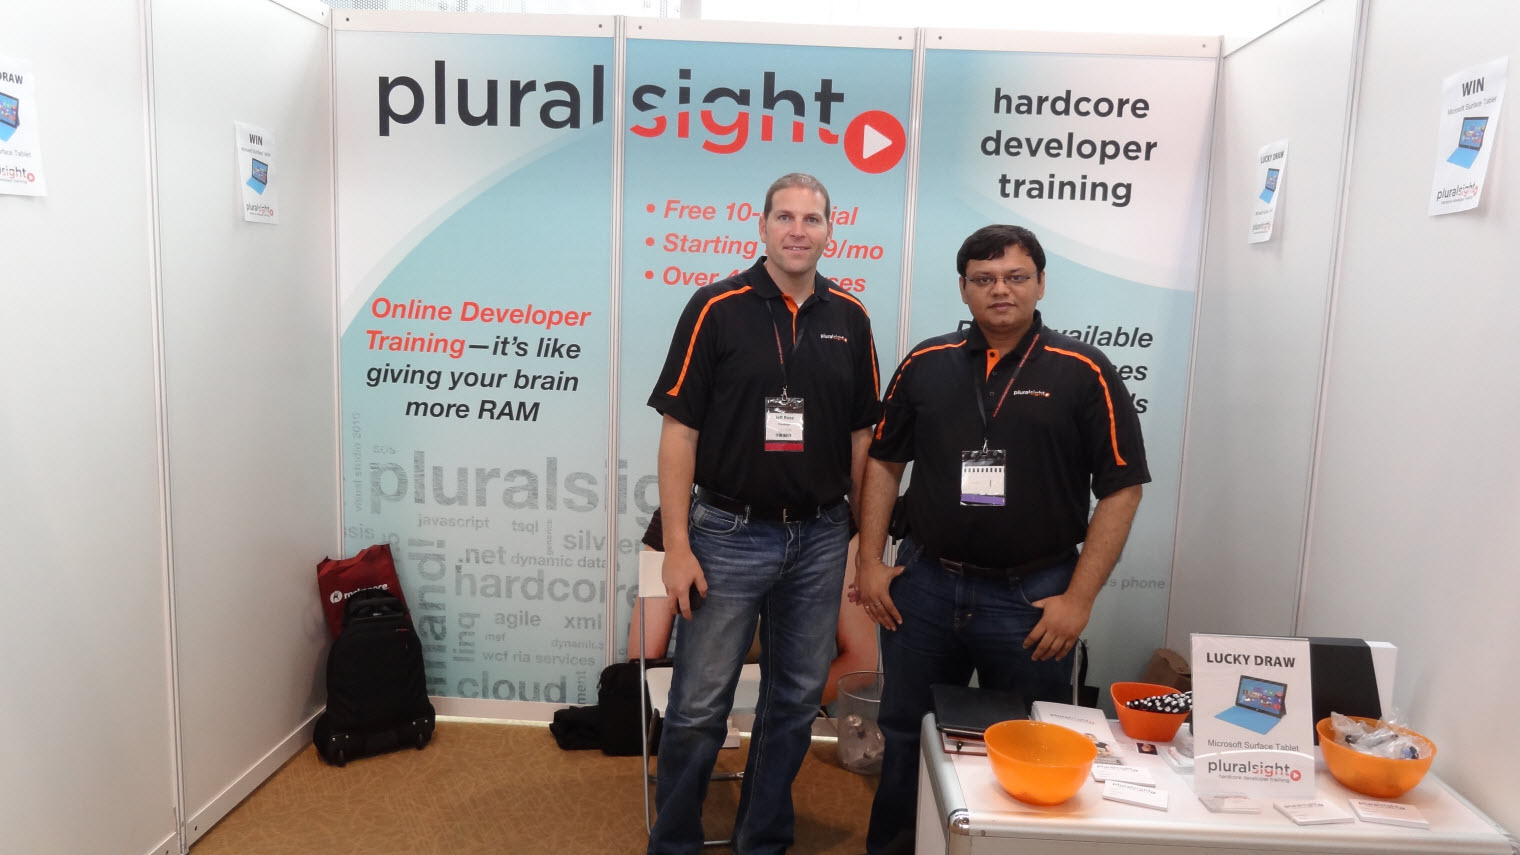 SQLAuthority News - Great Experience at SharePoint Conference Singapore 2013 SEASPC6